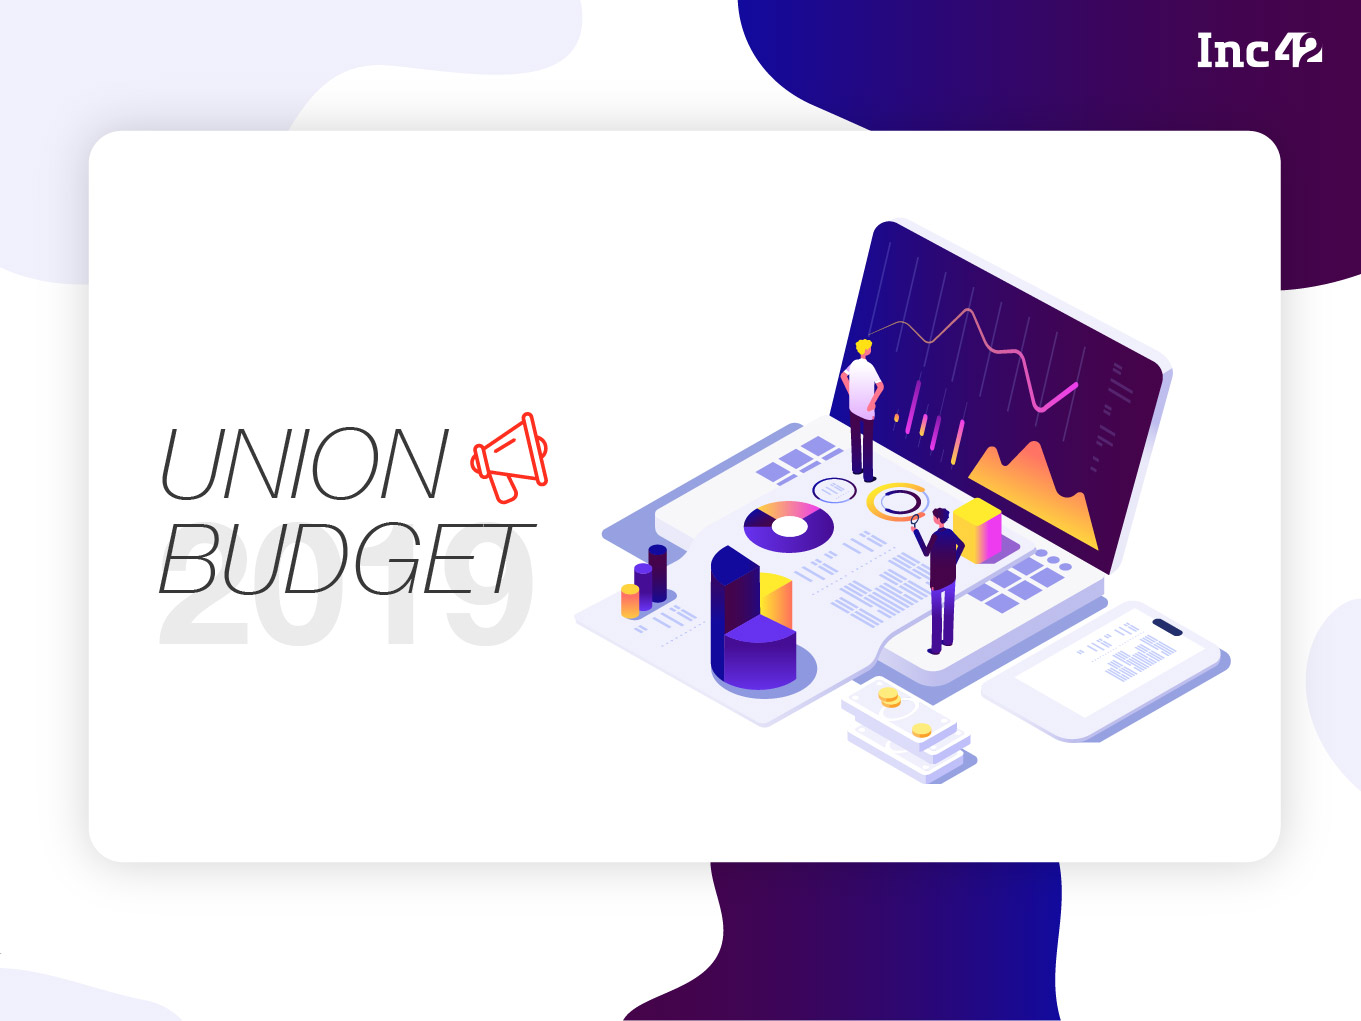 Union Budget 2019: What Do Fintech Startups Want From The Upcoming Budget